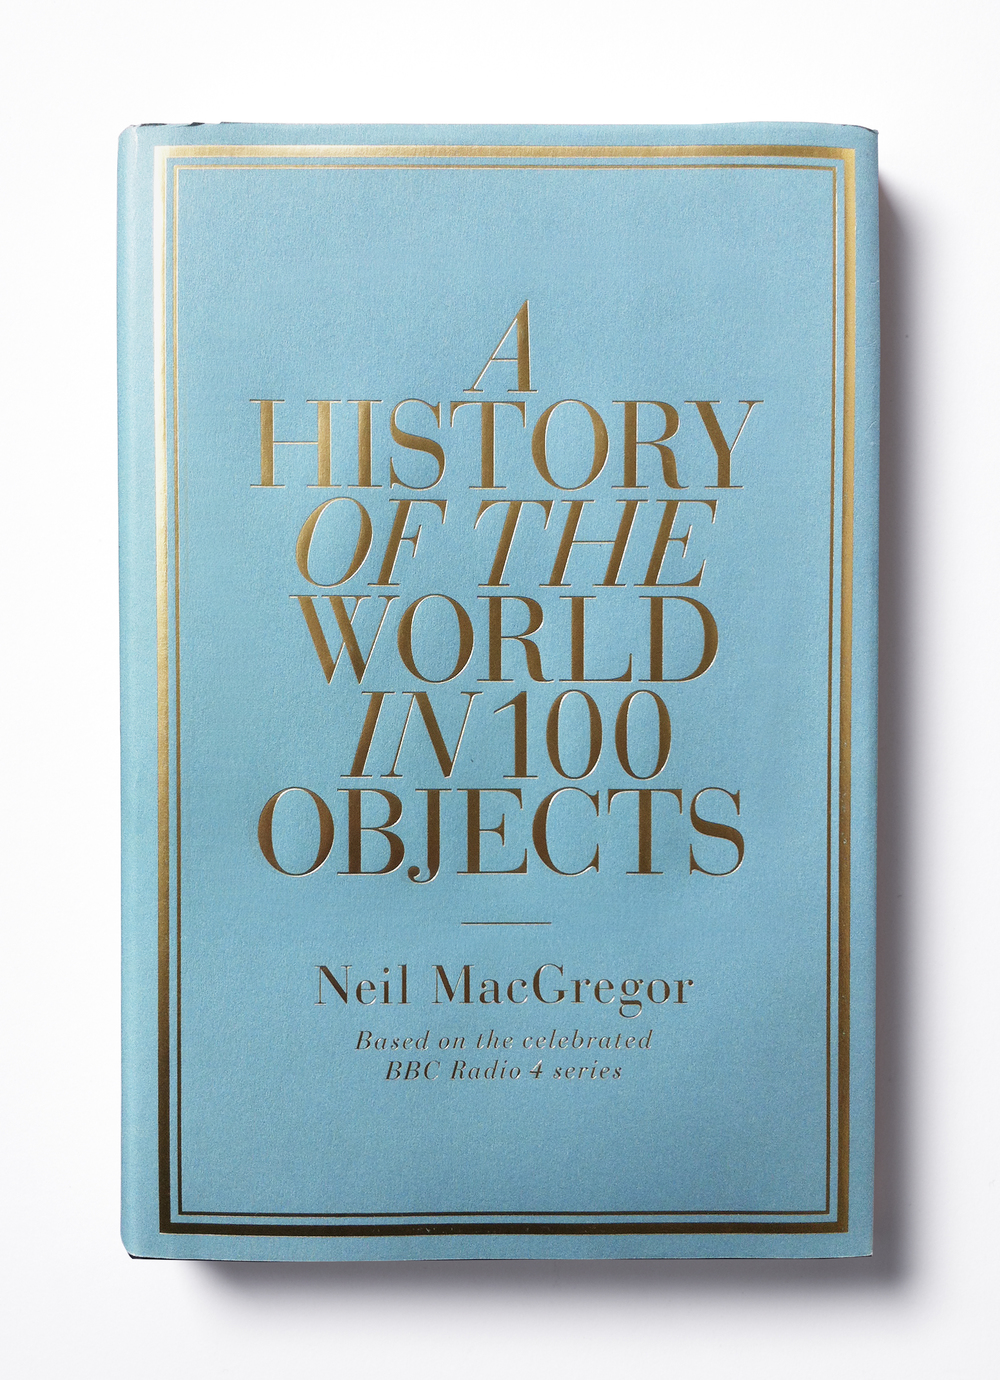 A History of the World in 100 Objects by Neil MacGregor - Design: Jim Stoddart